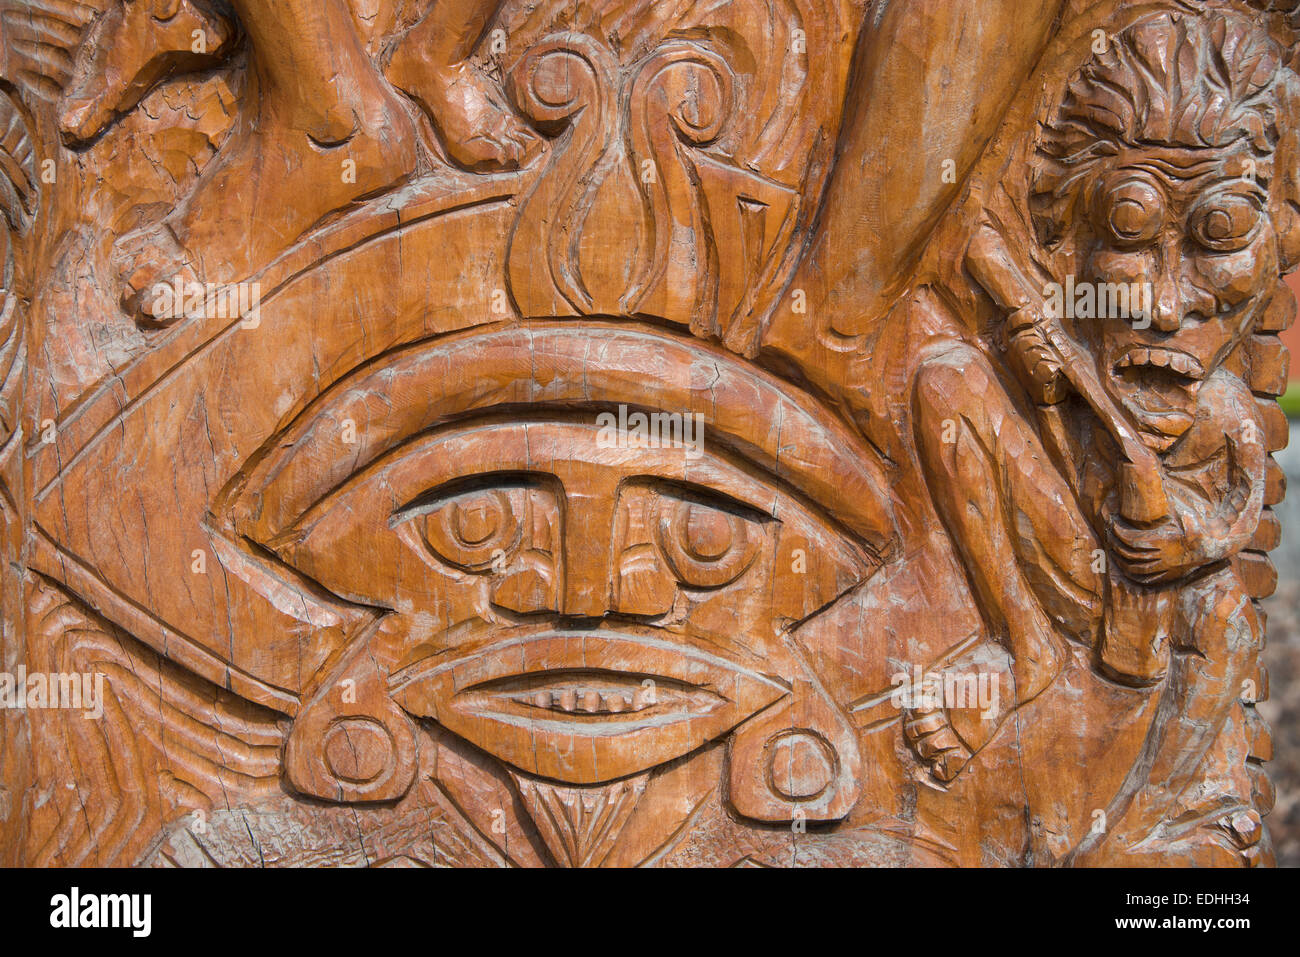 Melanesia, Solomon Islands, Guadalcanal Island, capital city of Honiara. Detail of traditional wood carving. - Stock Image